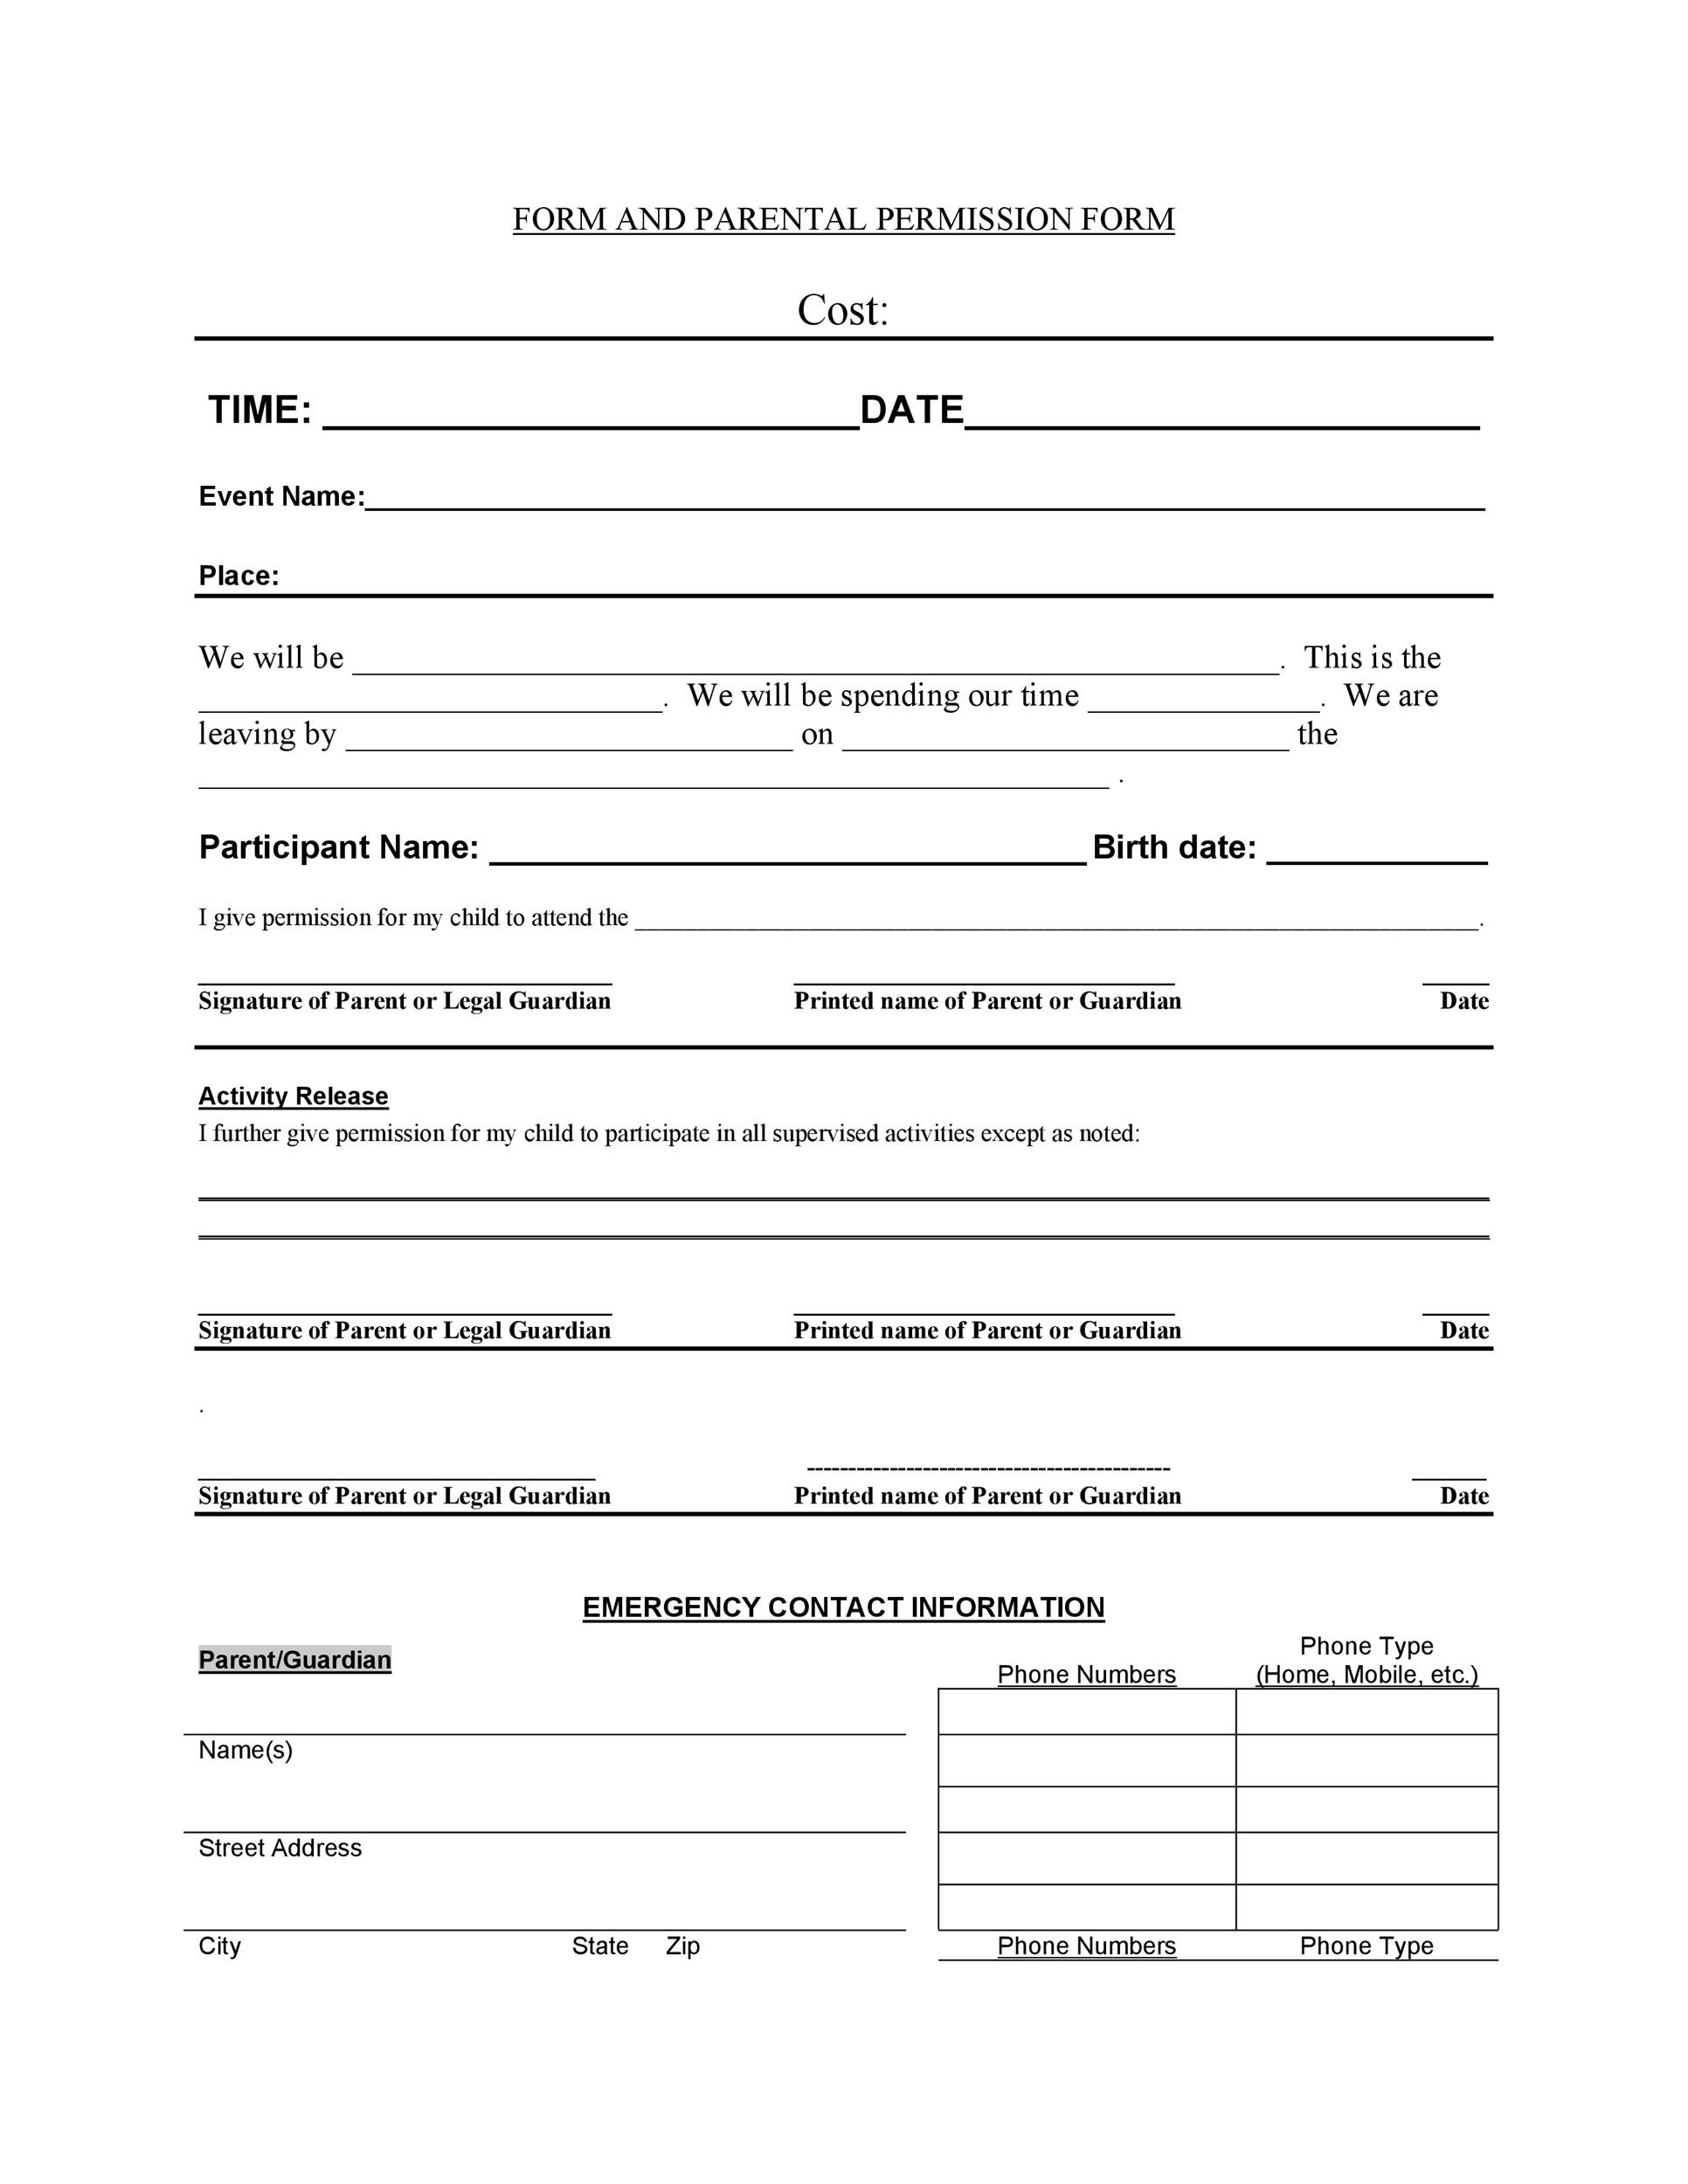 Field Trip Permission Form Template from templatelab.com